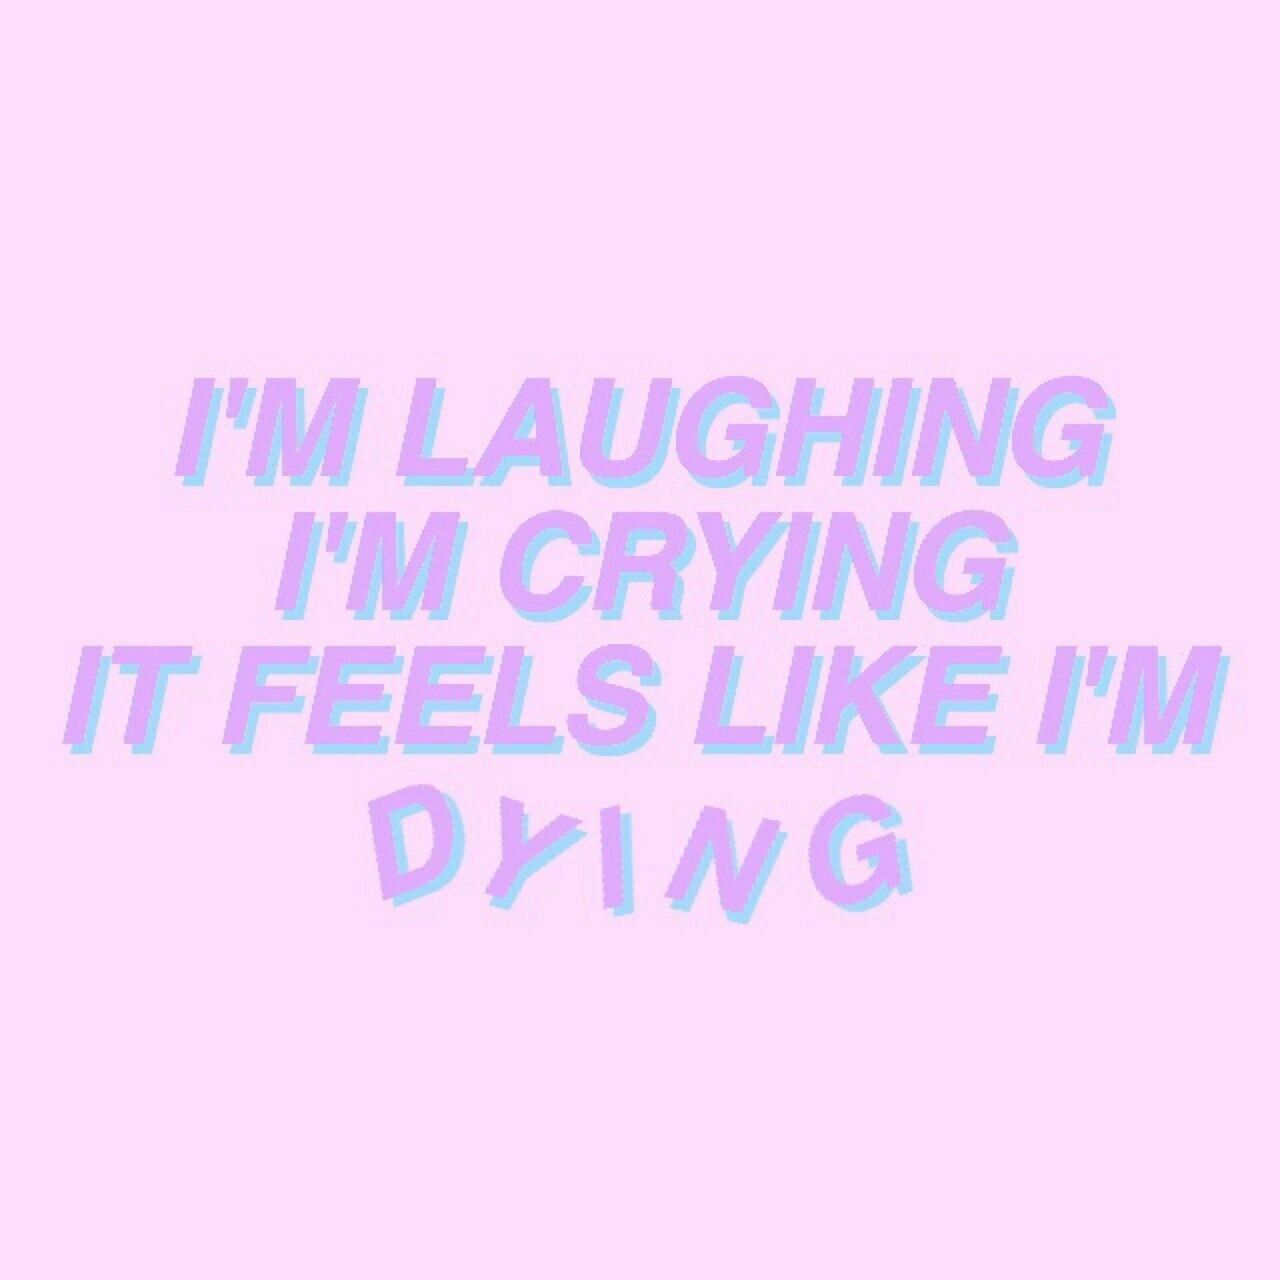 Wallpapers For Your Phone Quote Aesthetic Melanie Martinez Quotes Melanie Martinez Lyrics